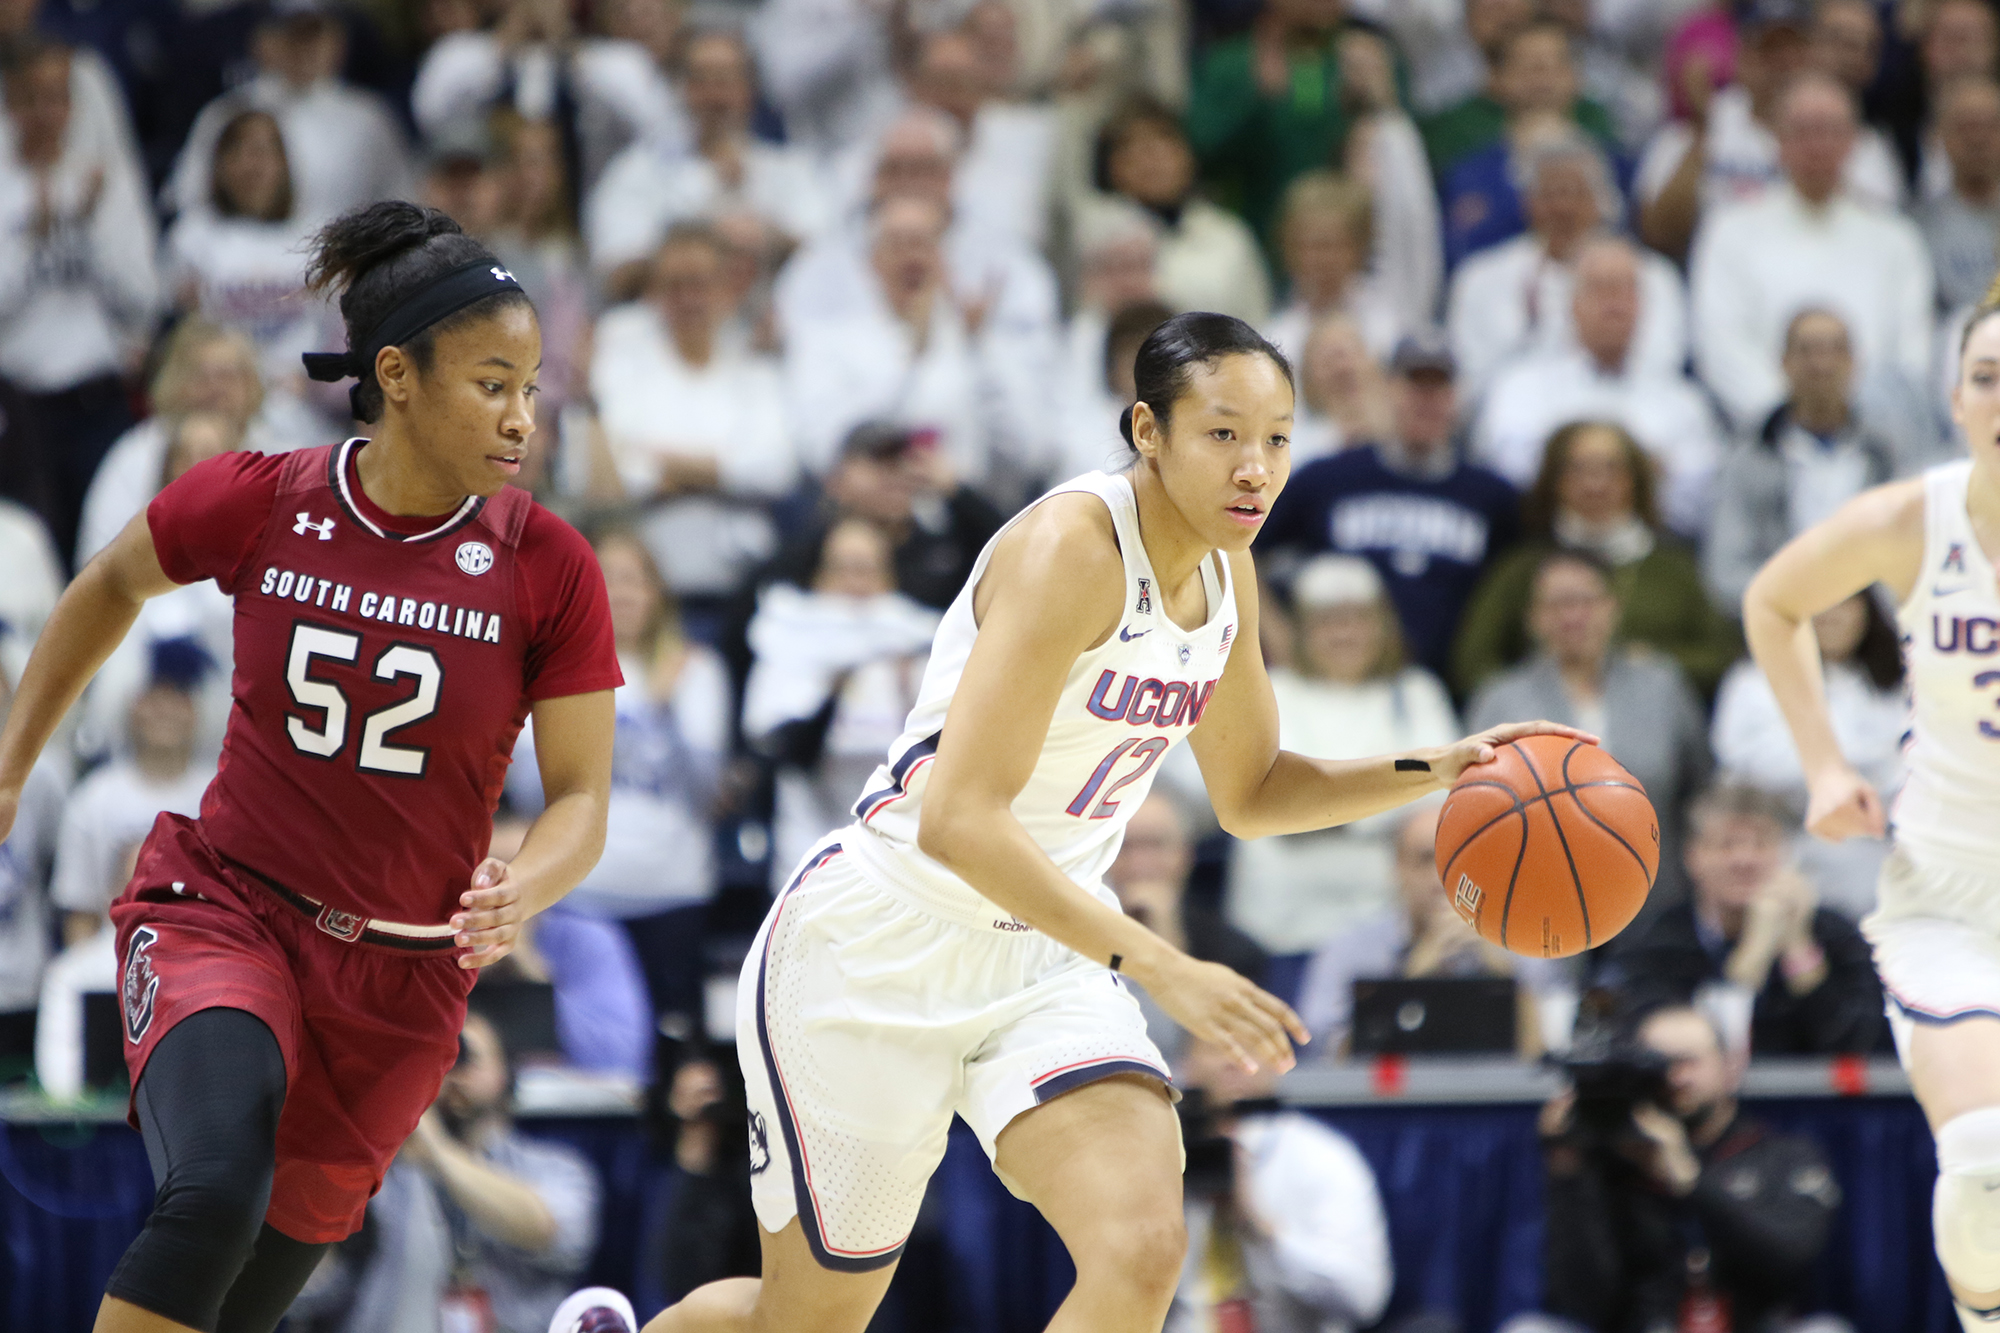 The UConn women's basketball team extended their win streak to 100 games Monday night at Gampel Pavilion with a 66-55 win over South Carolina. (Jackson Haigis/ The Daily Campus)